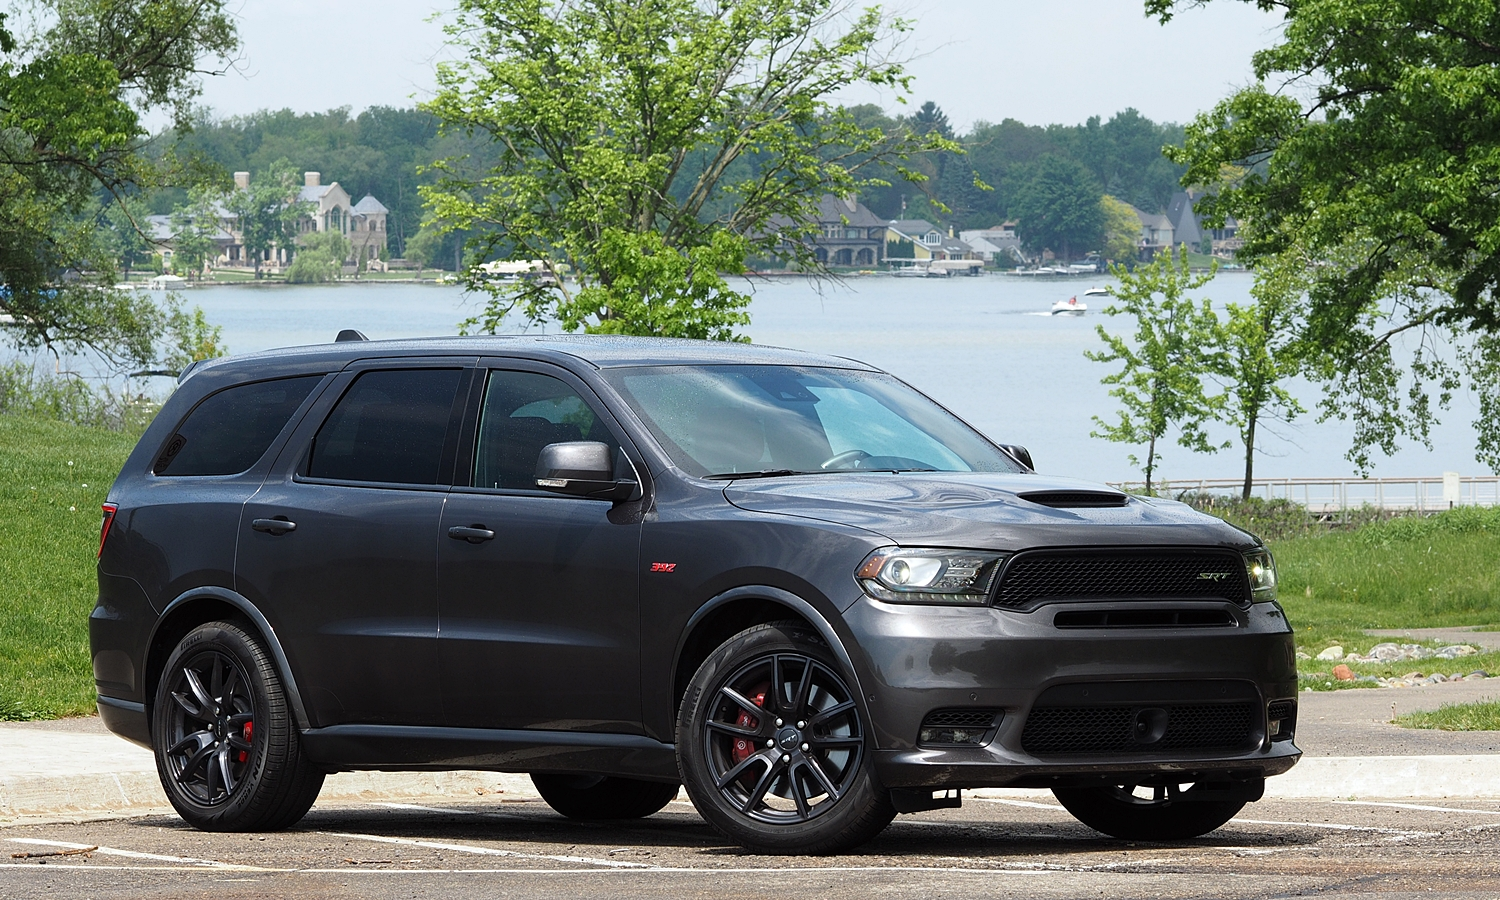 2018 Dodge Durango Pros And Cons At Truedelta 2018 Dodge Durango Srt Review By Michael Karesh